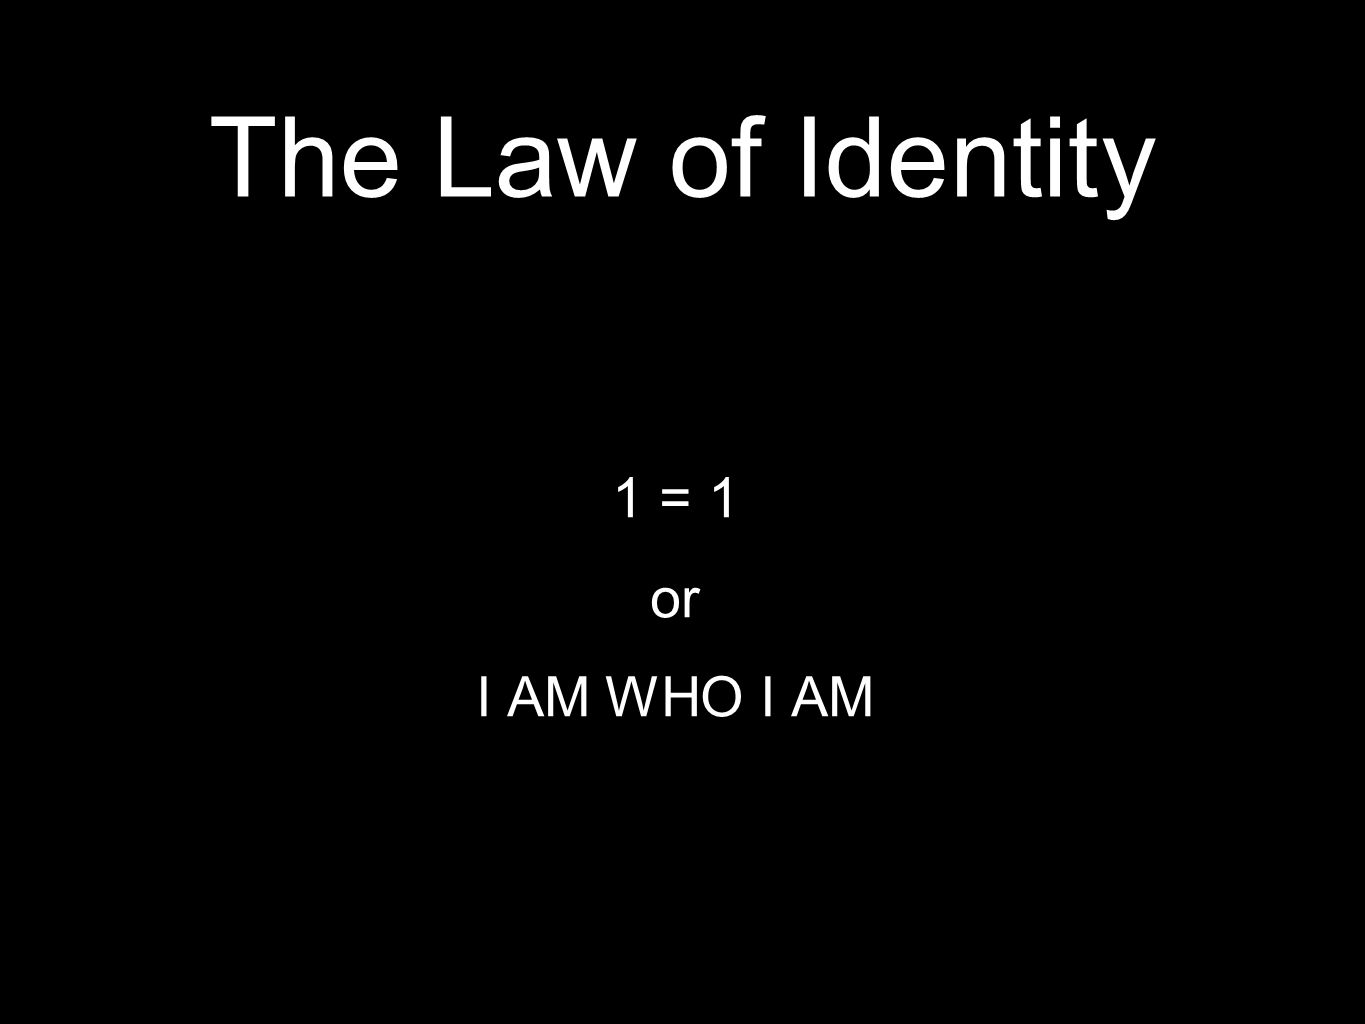 The Law of Identity 1 = 1 or I AM WHO I AM